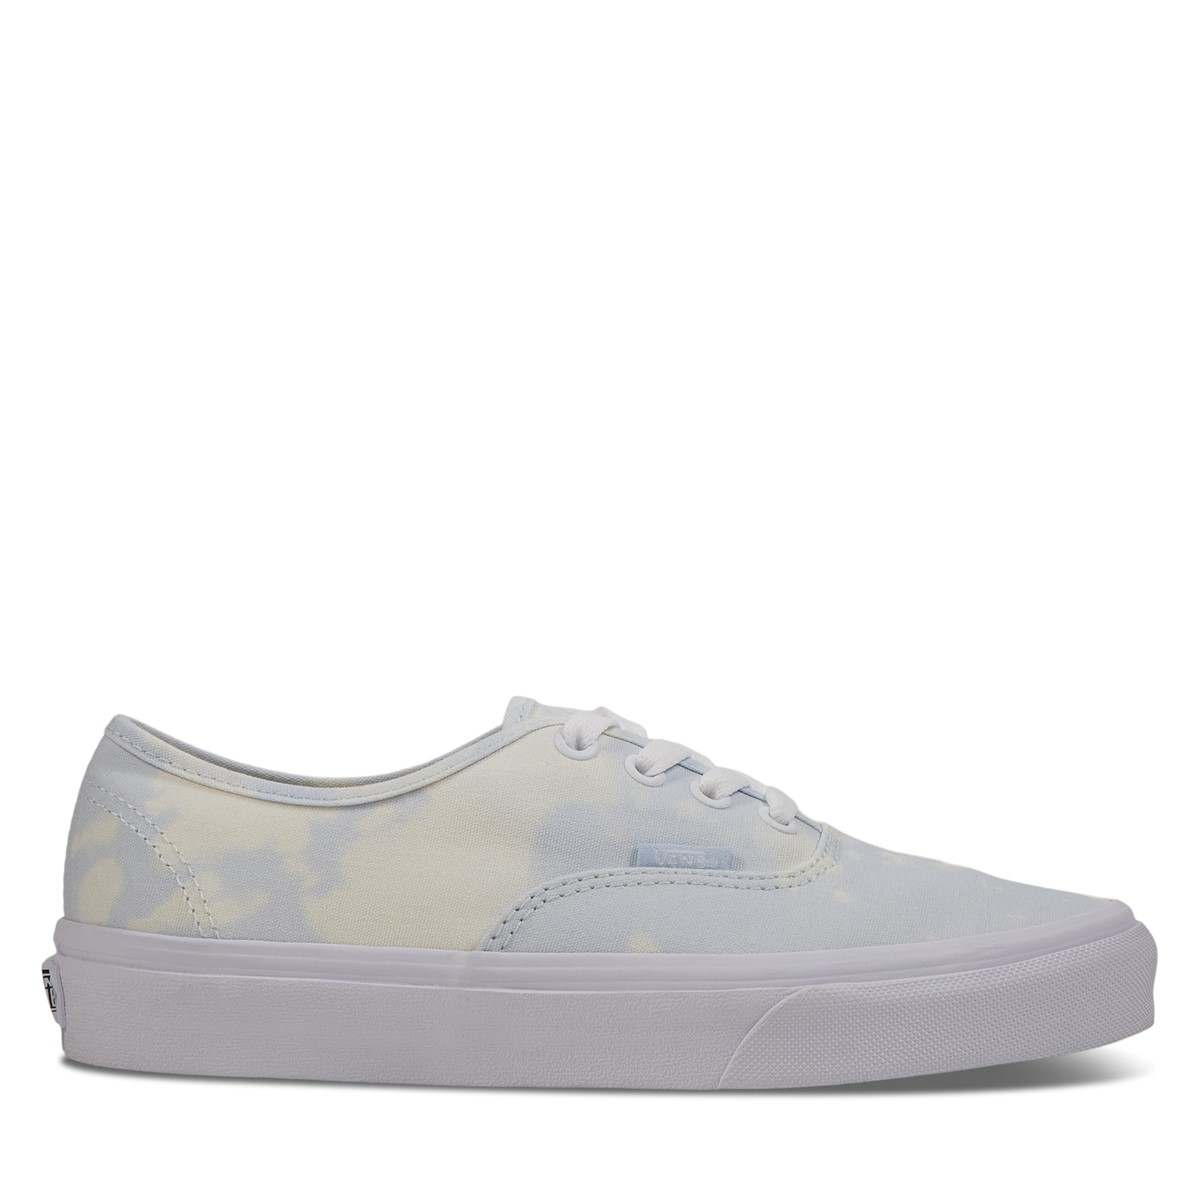 Women's Authentic Low-cut Sneakers in Beige and Blue Tie Dye